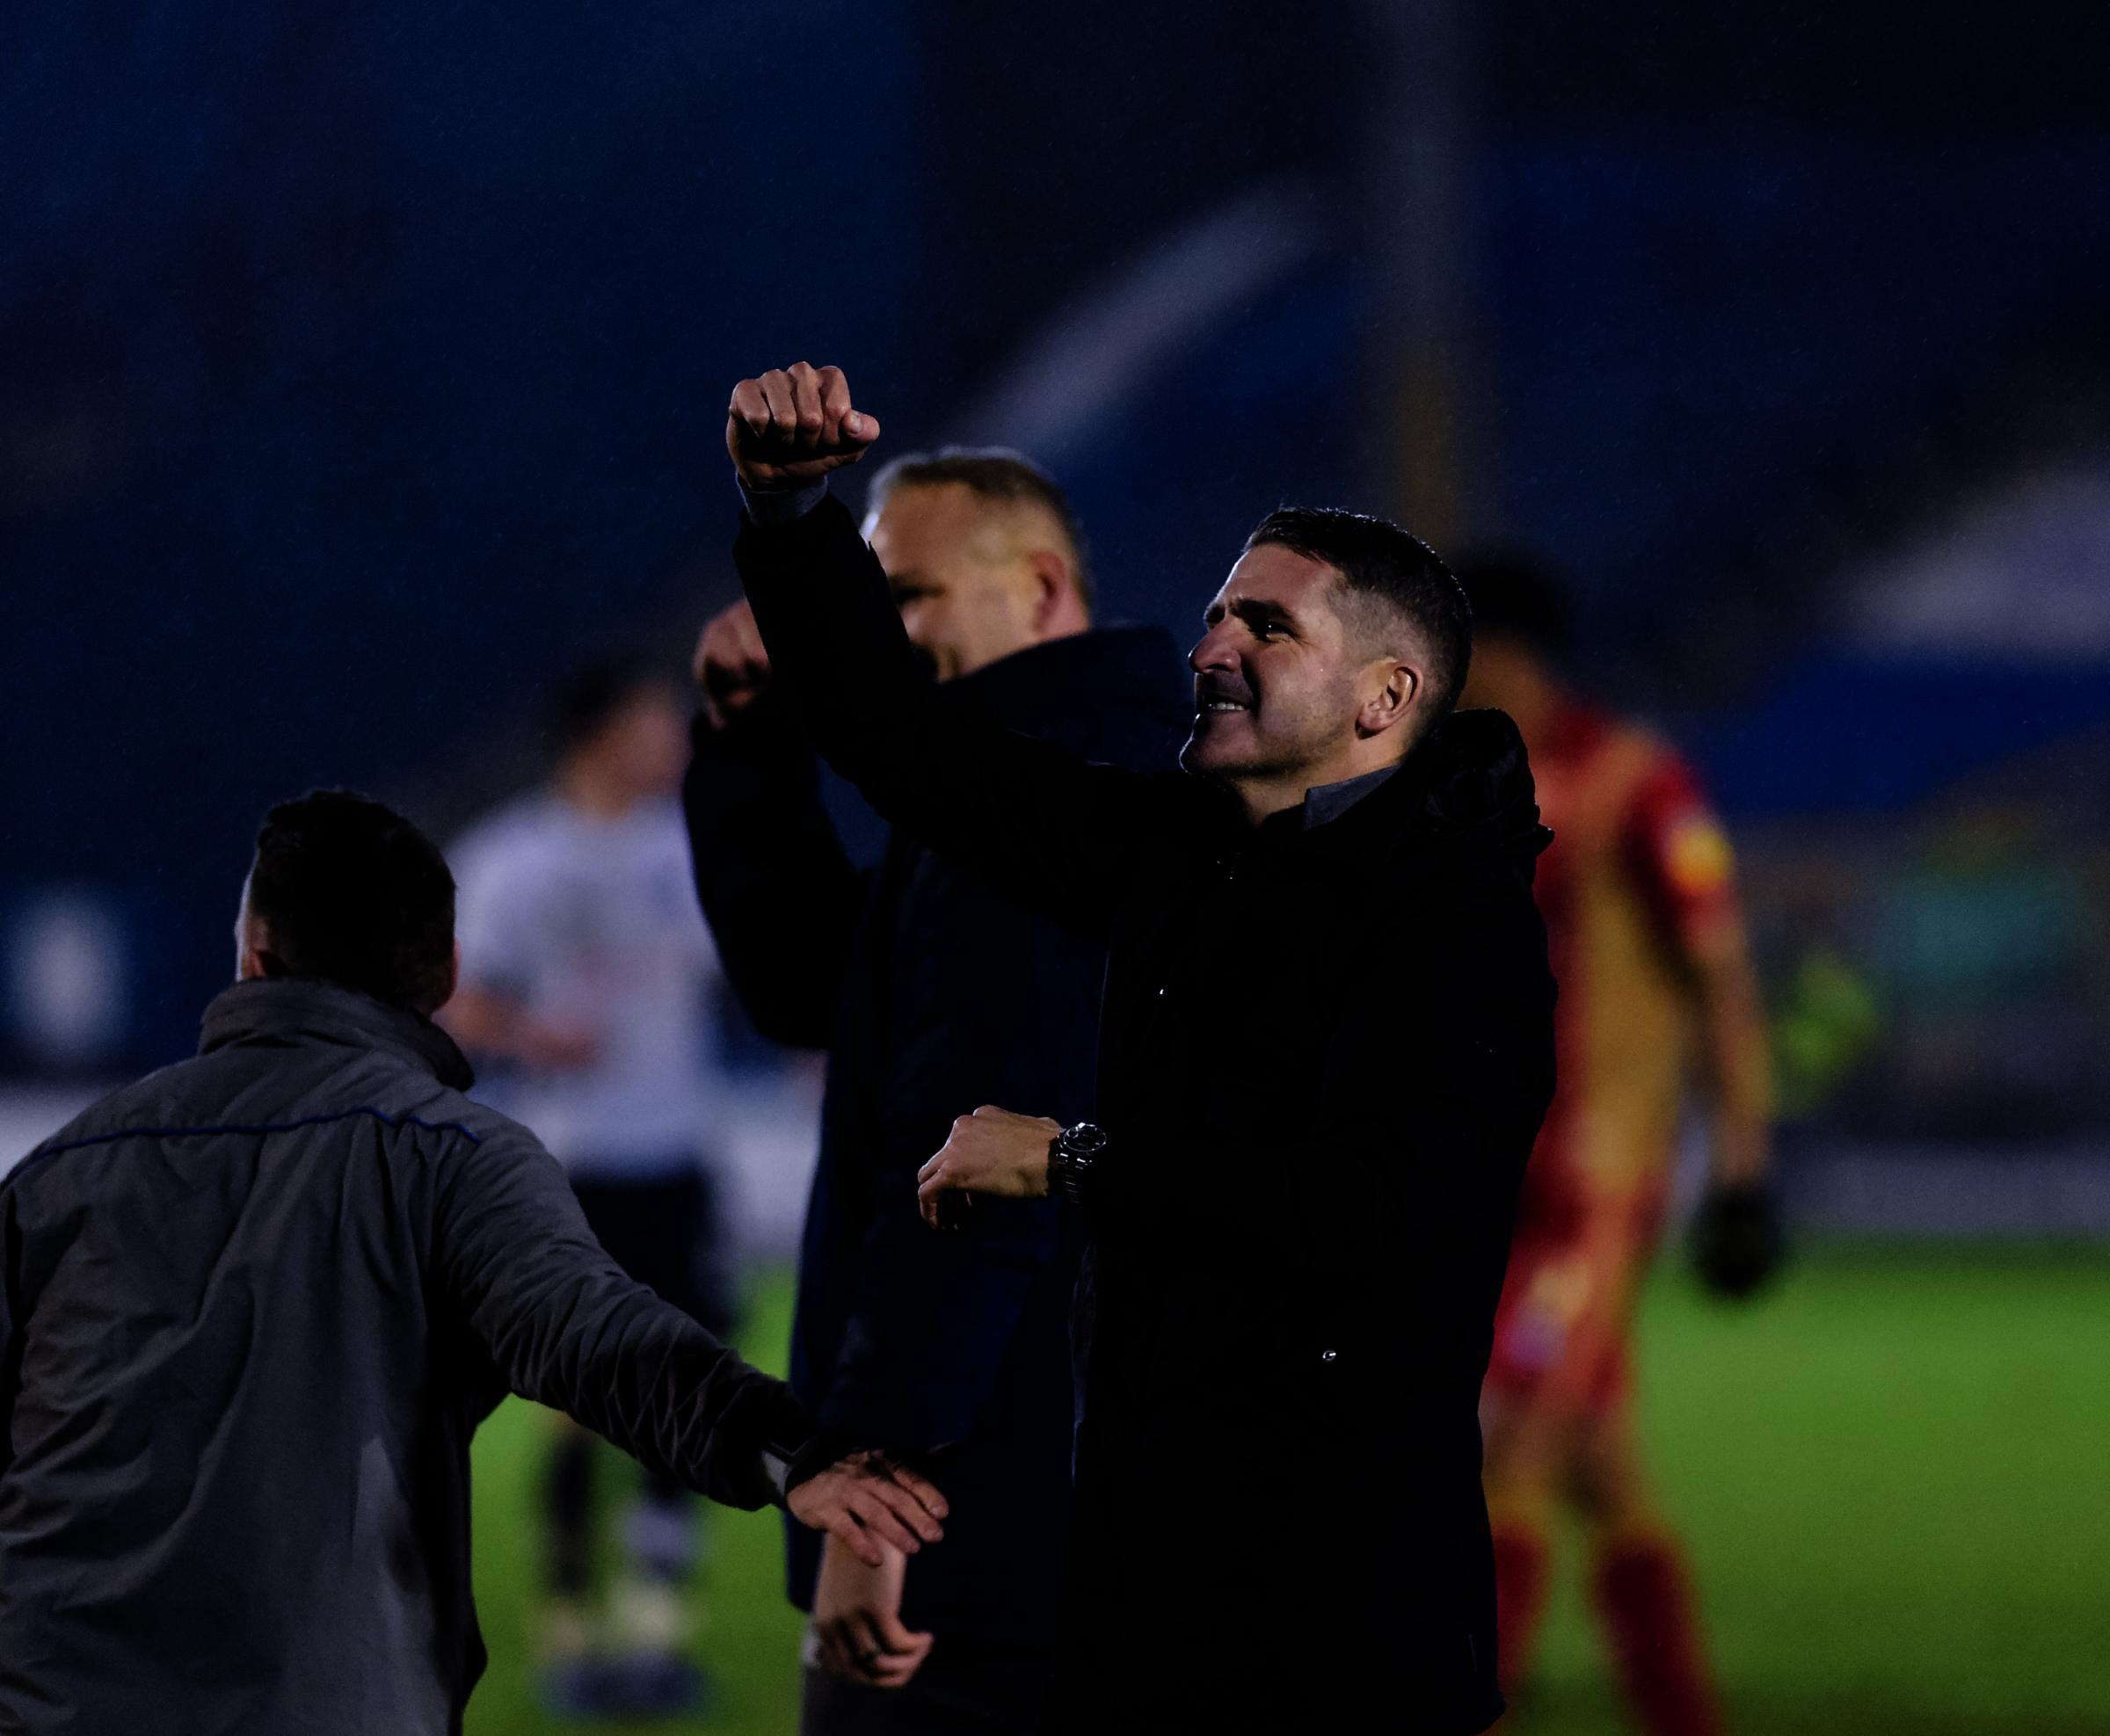 Bury manager Ryan Lowe after the Sky Bet League 2 match between Bury FC and MK Dons at The Energy Check Stadium at Gigg Lane, Bury on Saturday 12th January 2019. Credit: Andy Whitehead..Self-billing applies where appropriate - info@andywhiteheadphotograph